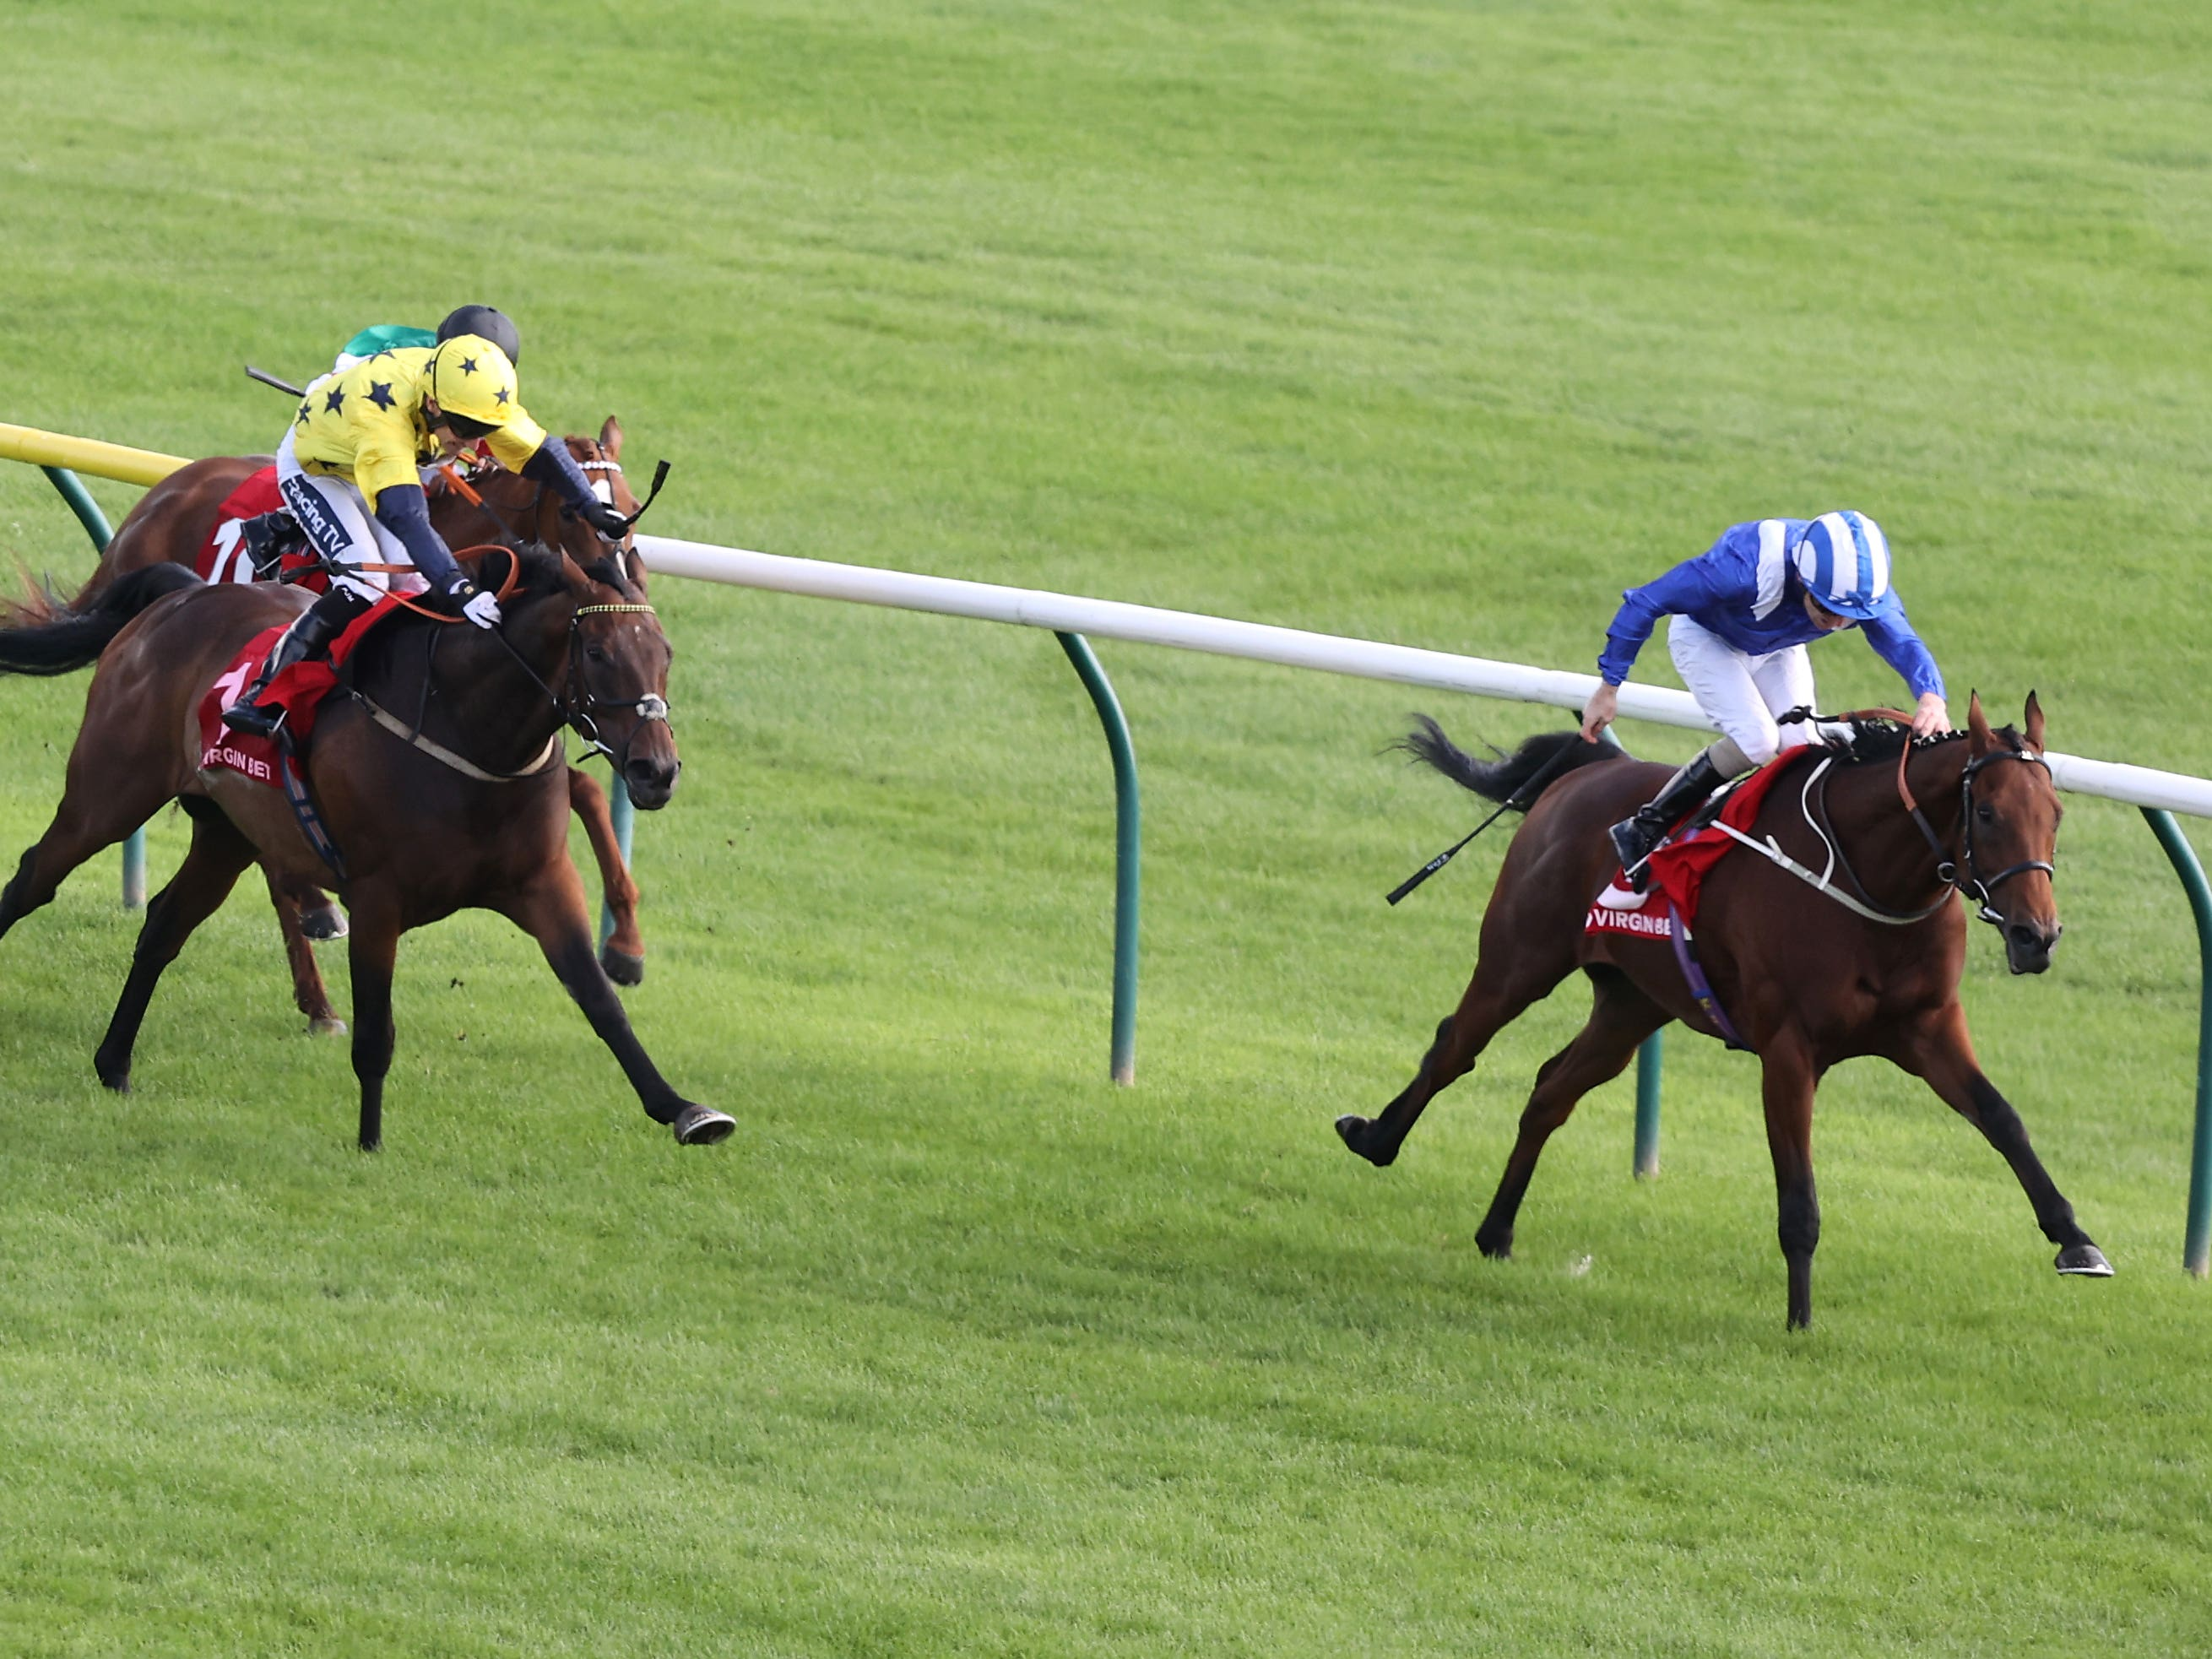 Maydanny (right) clear in the Doonside Cup at Ayr (Jeff Holmes/PA)